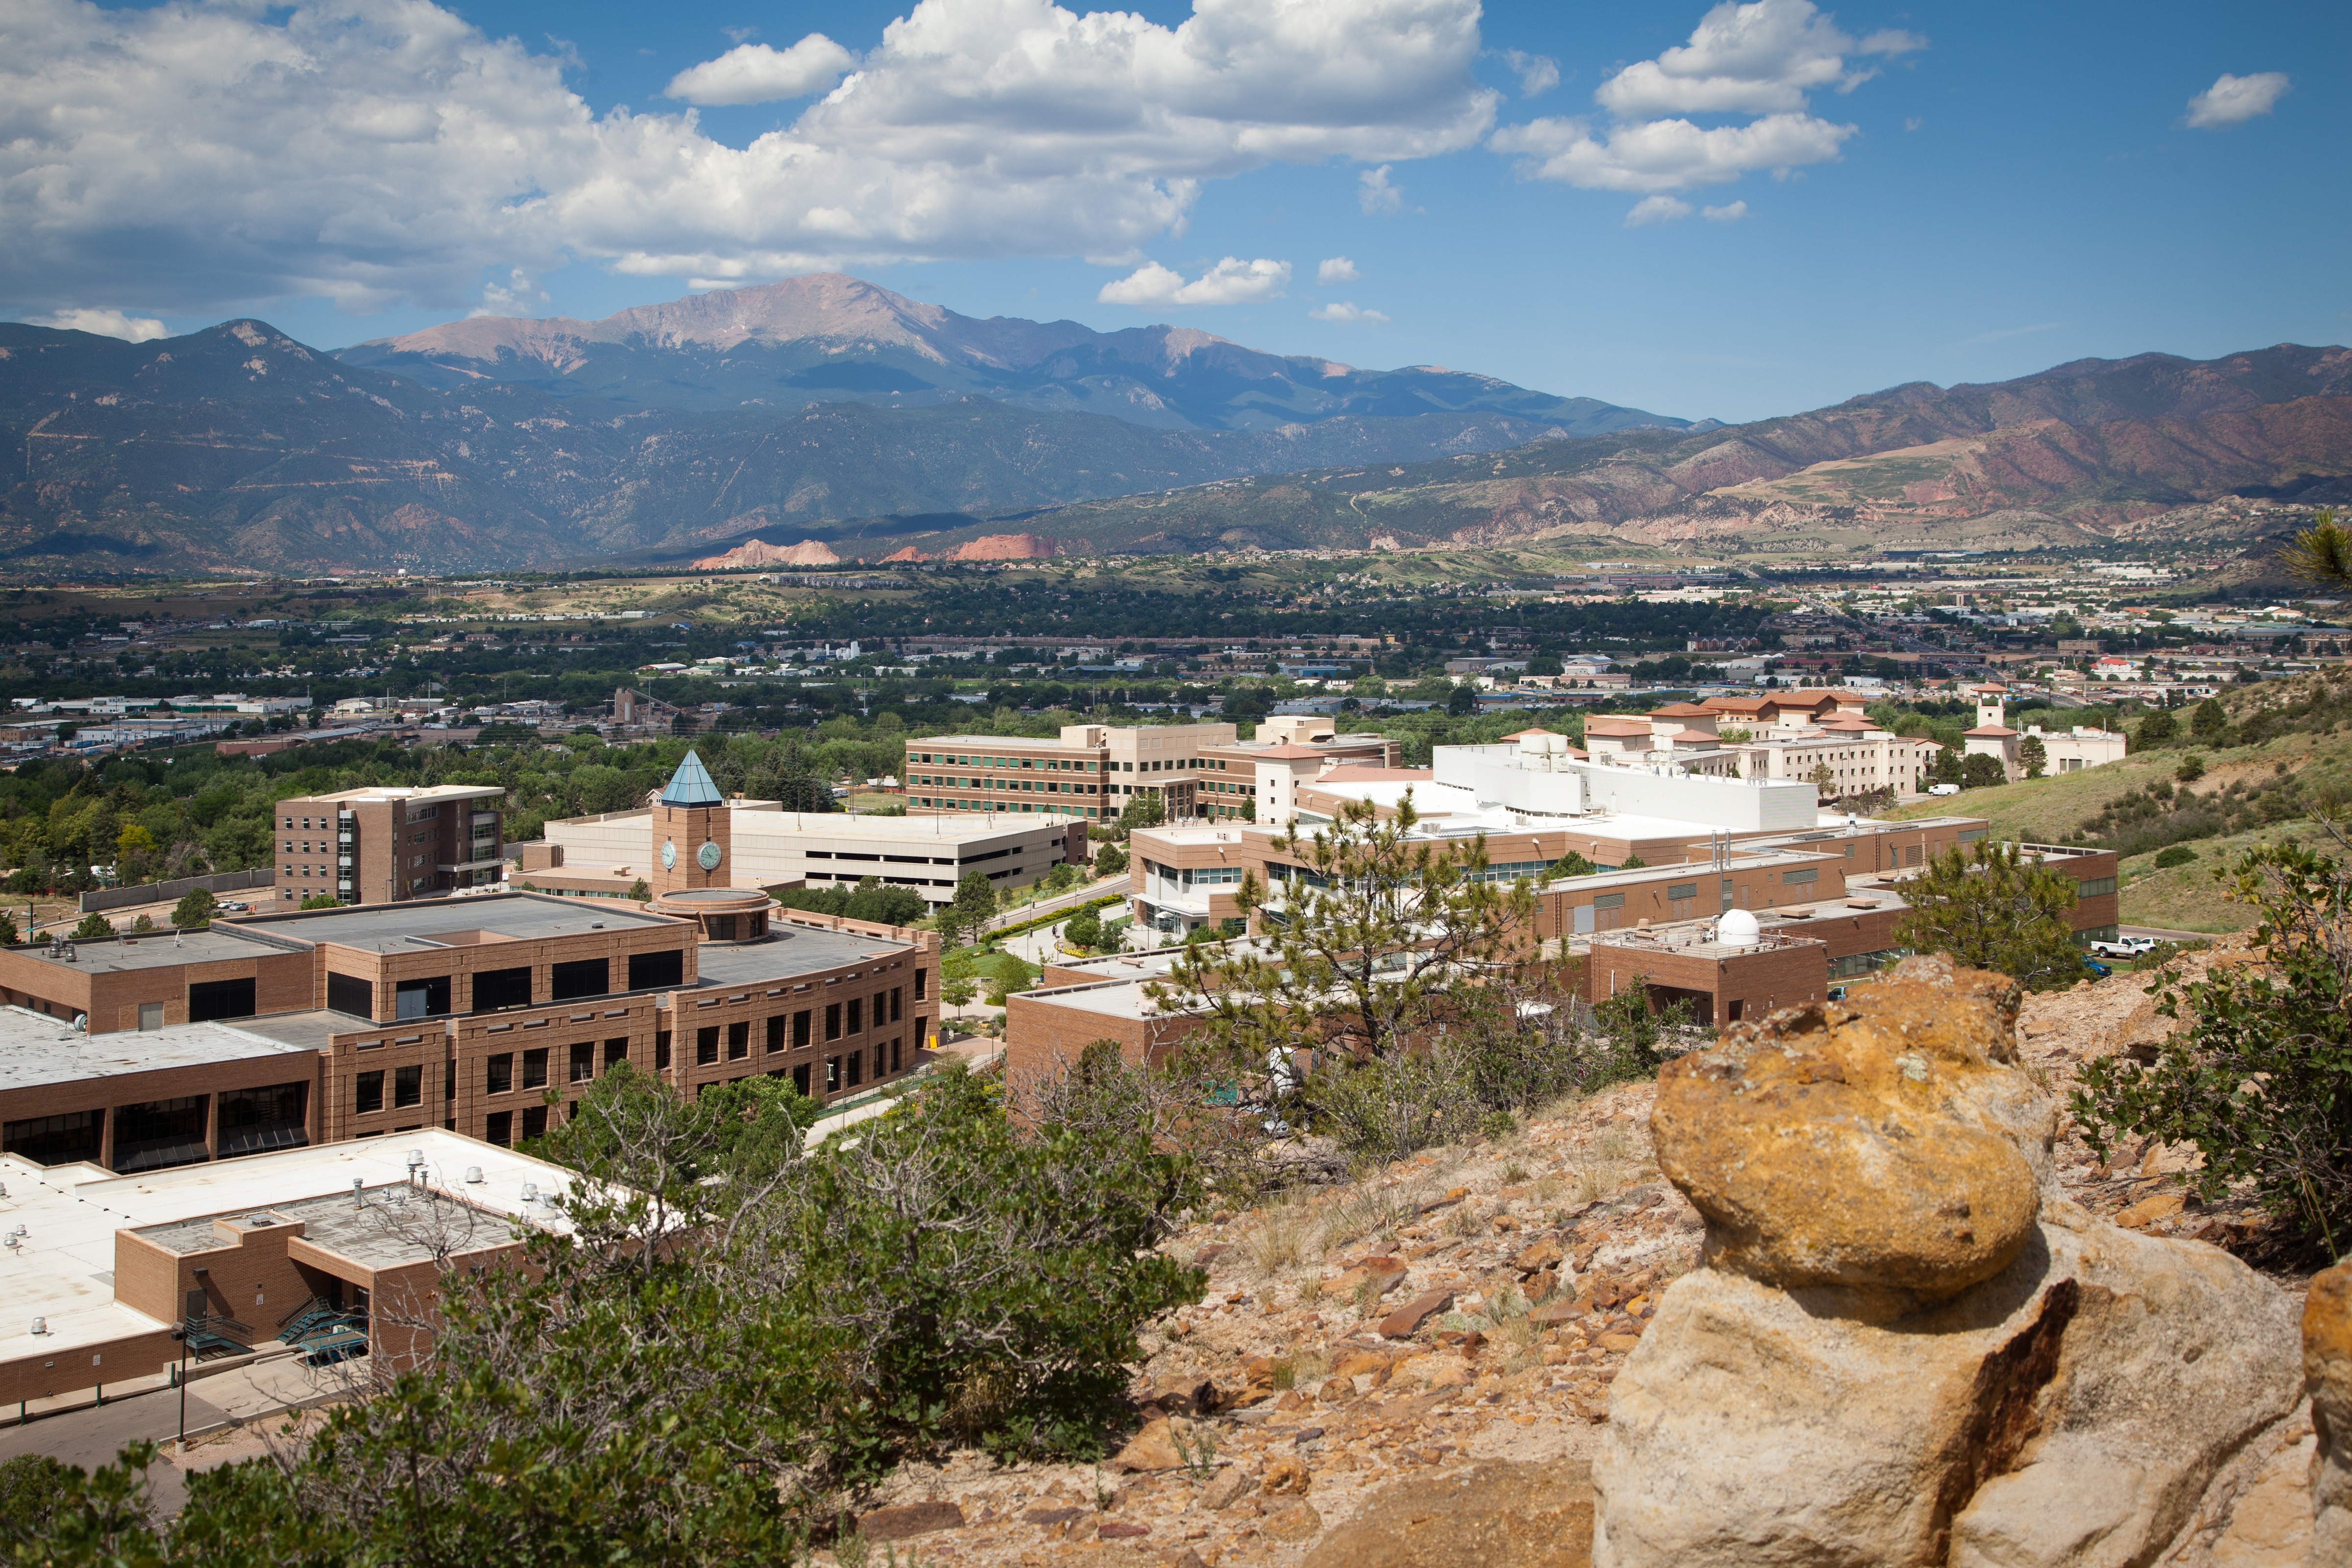 University of Colorado Colorado Springs Helen and Arthur E. Johnson Beth-El College of Nursing & Health Sciences